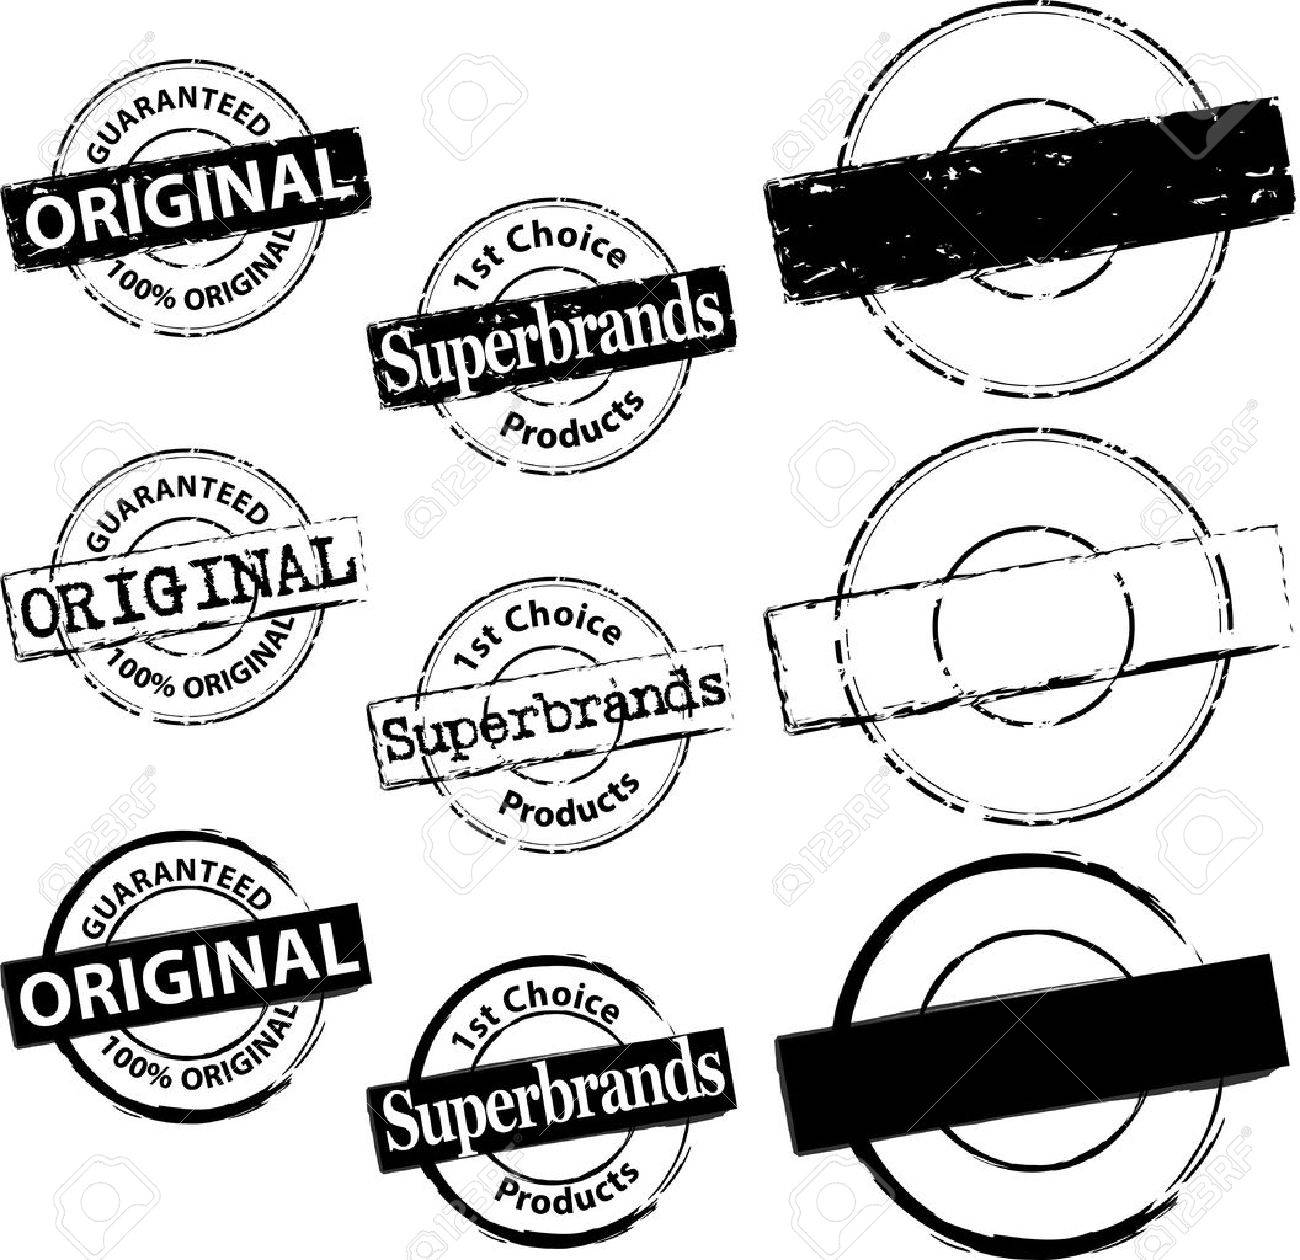 Rubber Stamp Original and Superbrand Stock Vector - 14580341